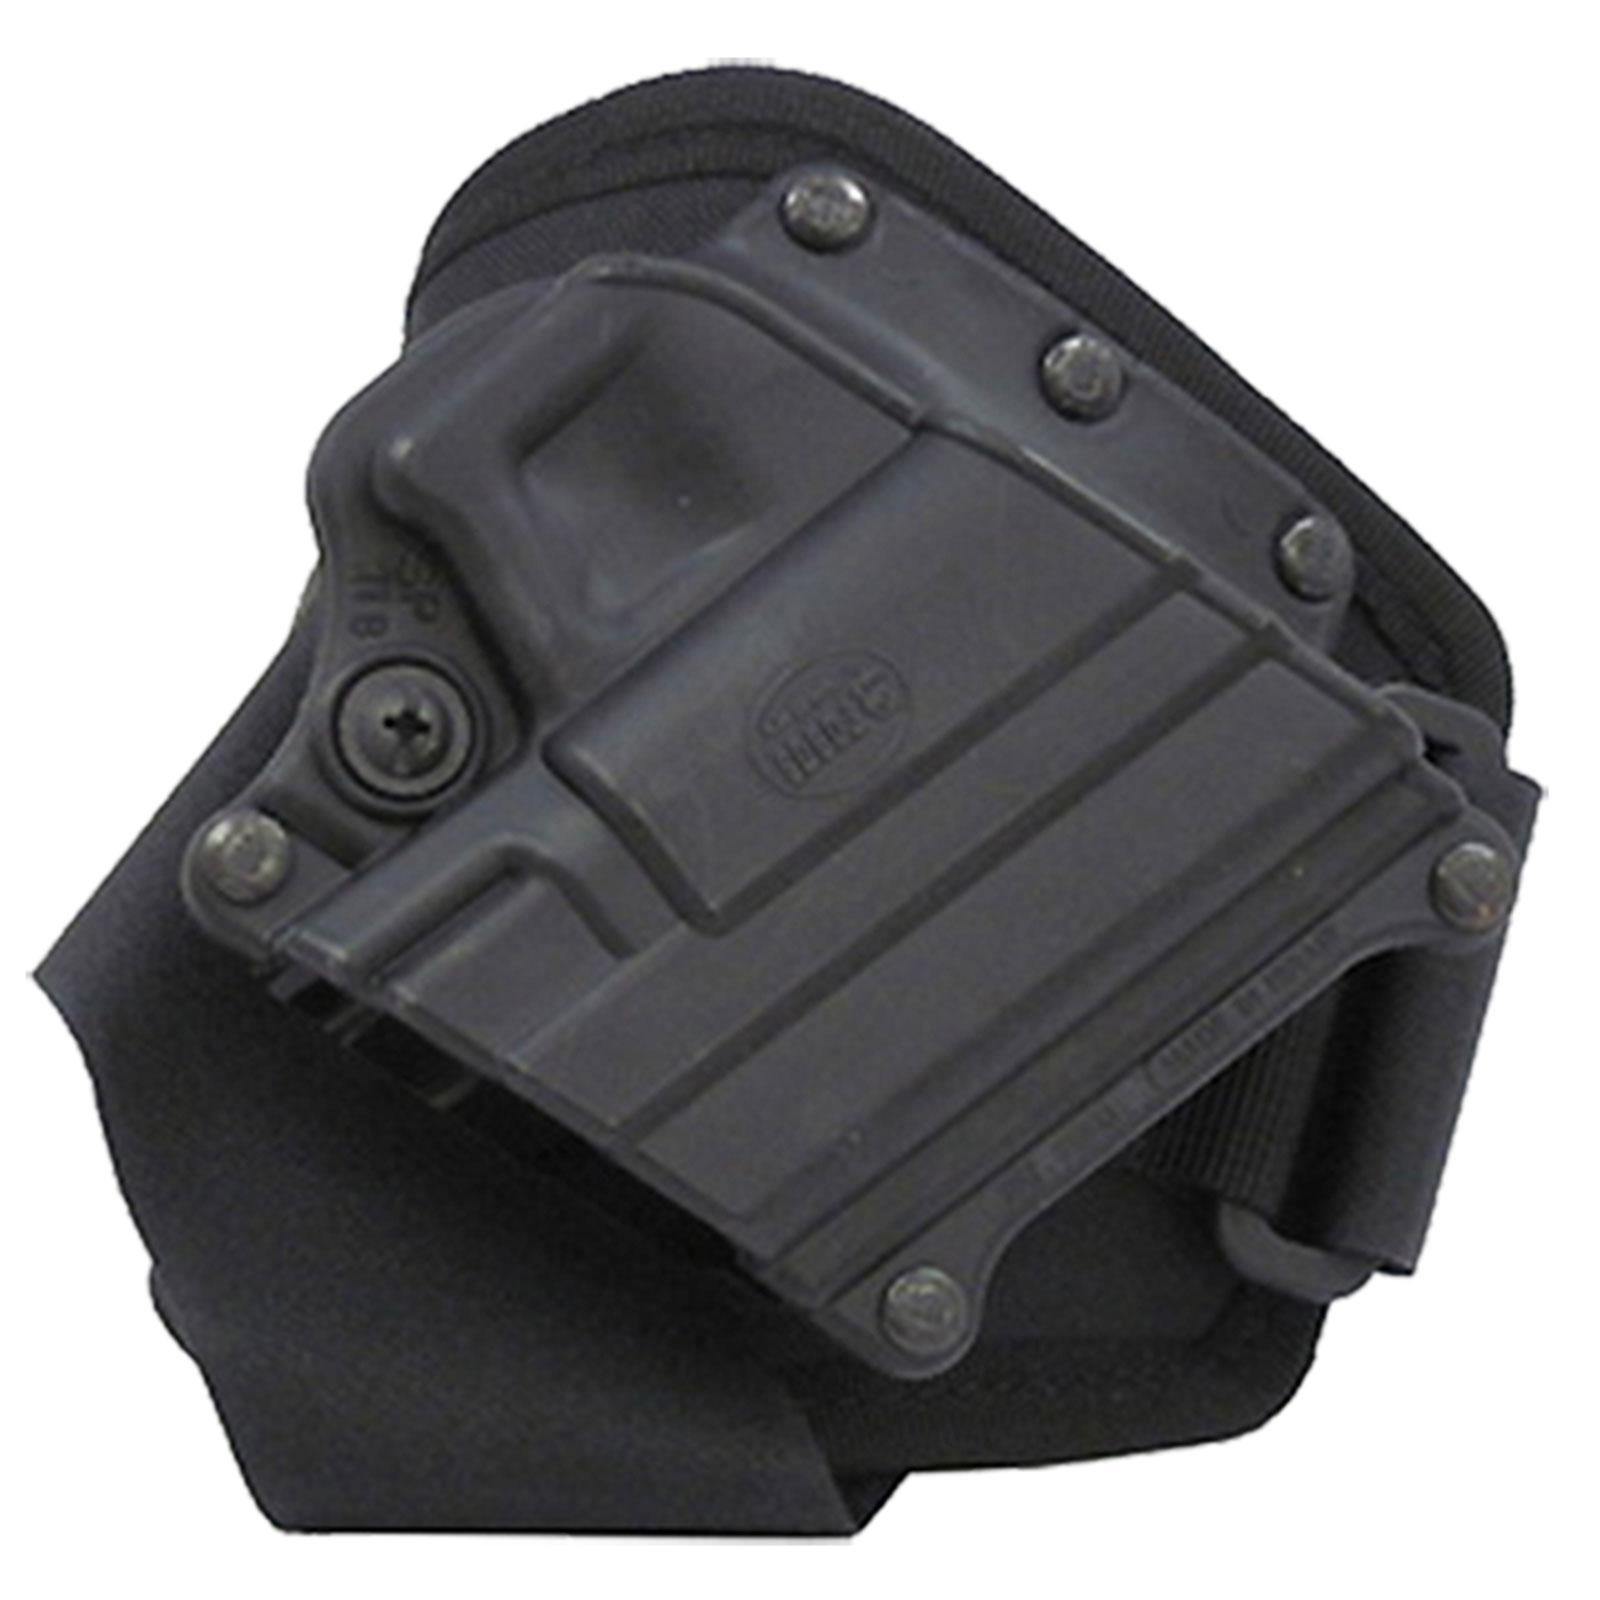 Fobus Ankle Holster fits Springfield Armory XD, HS 2000 9, 357, 40 5\ by Generic